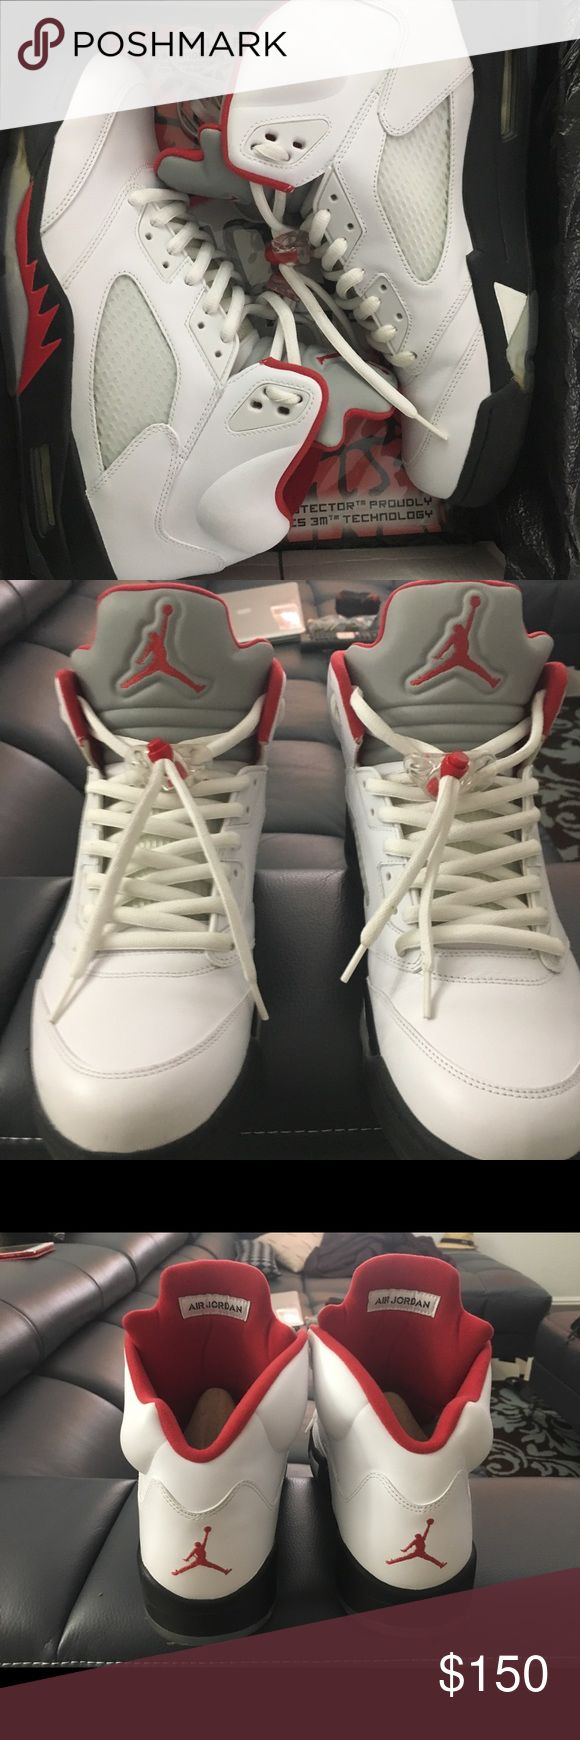 AIR JORDAN 5 (2013) Fire Red SZ13 AIR JORDAN 5 (2013) Fire Red SZ13 Used, with original box. They still have the Sole Protectors on. The black spot on sole is dirt on the Sole Protector. The rest of the shoe is clean! Even the sides haven't changed to yellow! I have the original laces as well. Stored in the box for more than a year now!  Selling cause I have more Jordan's that I haven't used yet!!! I take really good care of them and will send in double box! Any questions msg me! Offer Up…